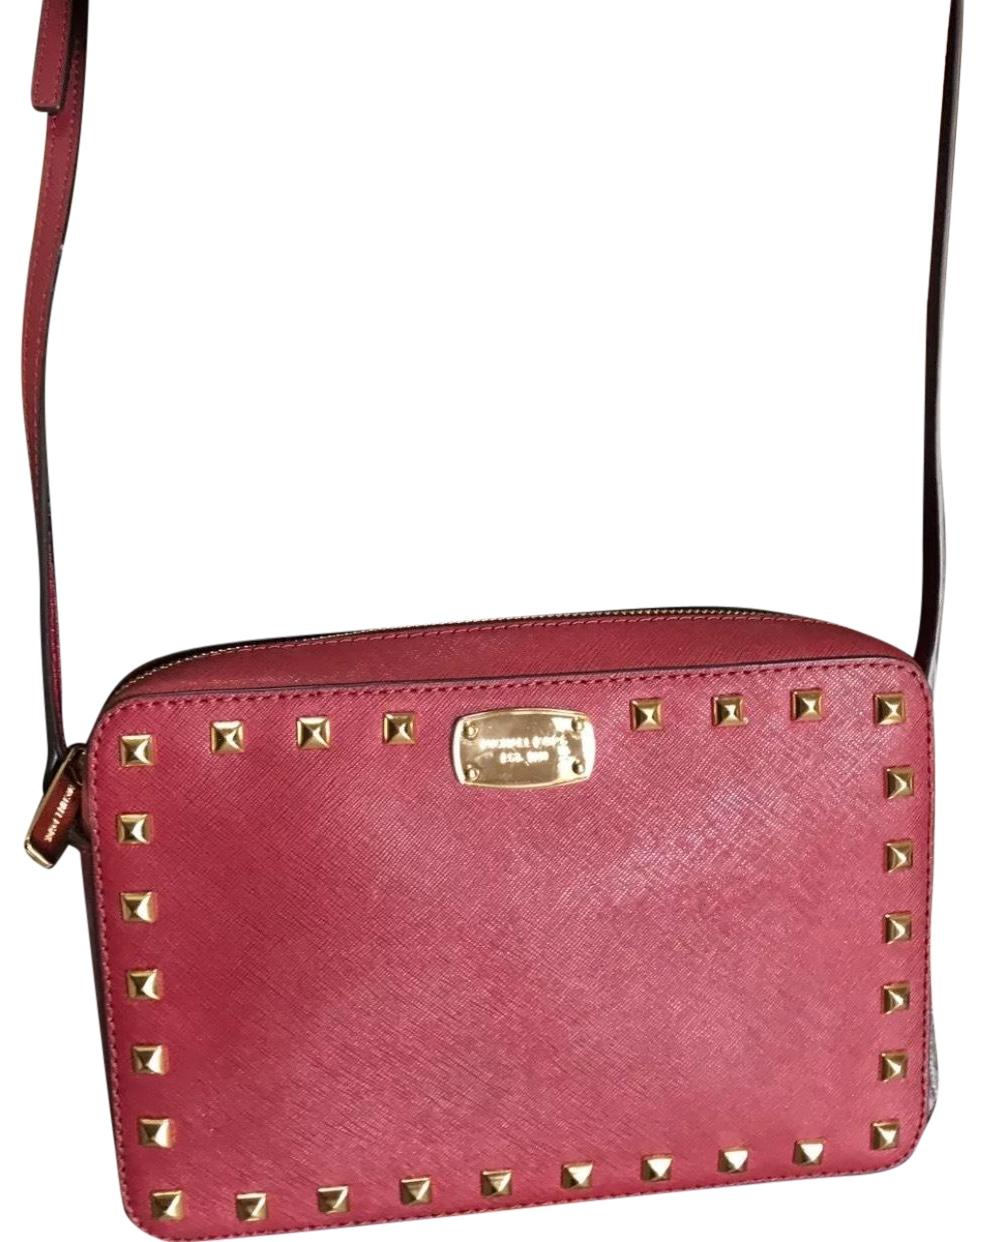 00b8c2636ebc ... cherry ece95 08481 discount code for michael kors cross body bag 96737  c8fc4 ...